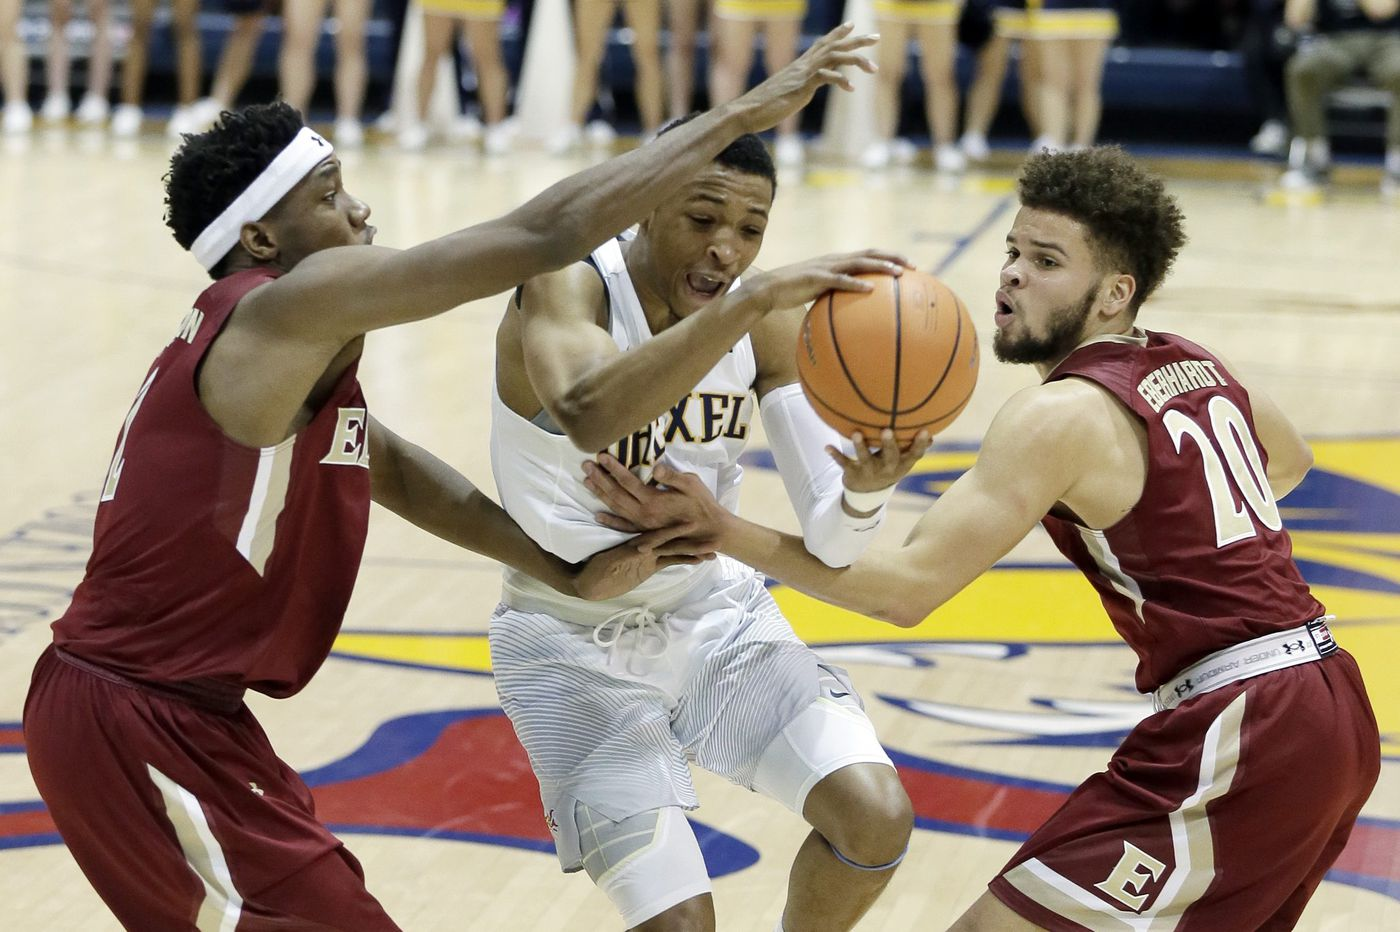 Dragons will rely on Troy Harper and Kurk Lee to lead march toward improvement | Drexel season preview